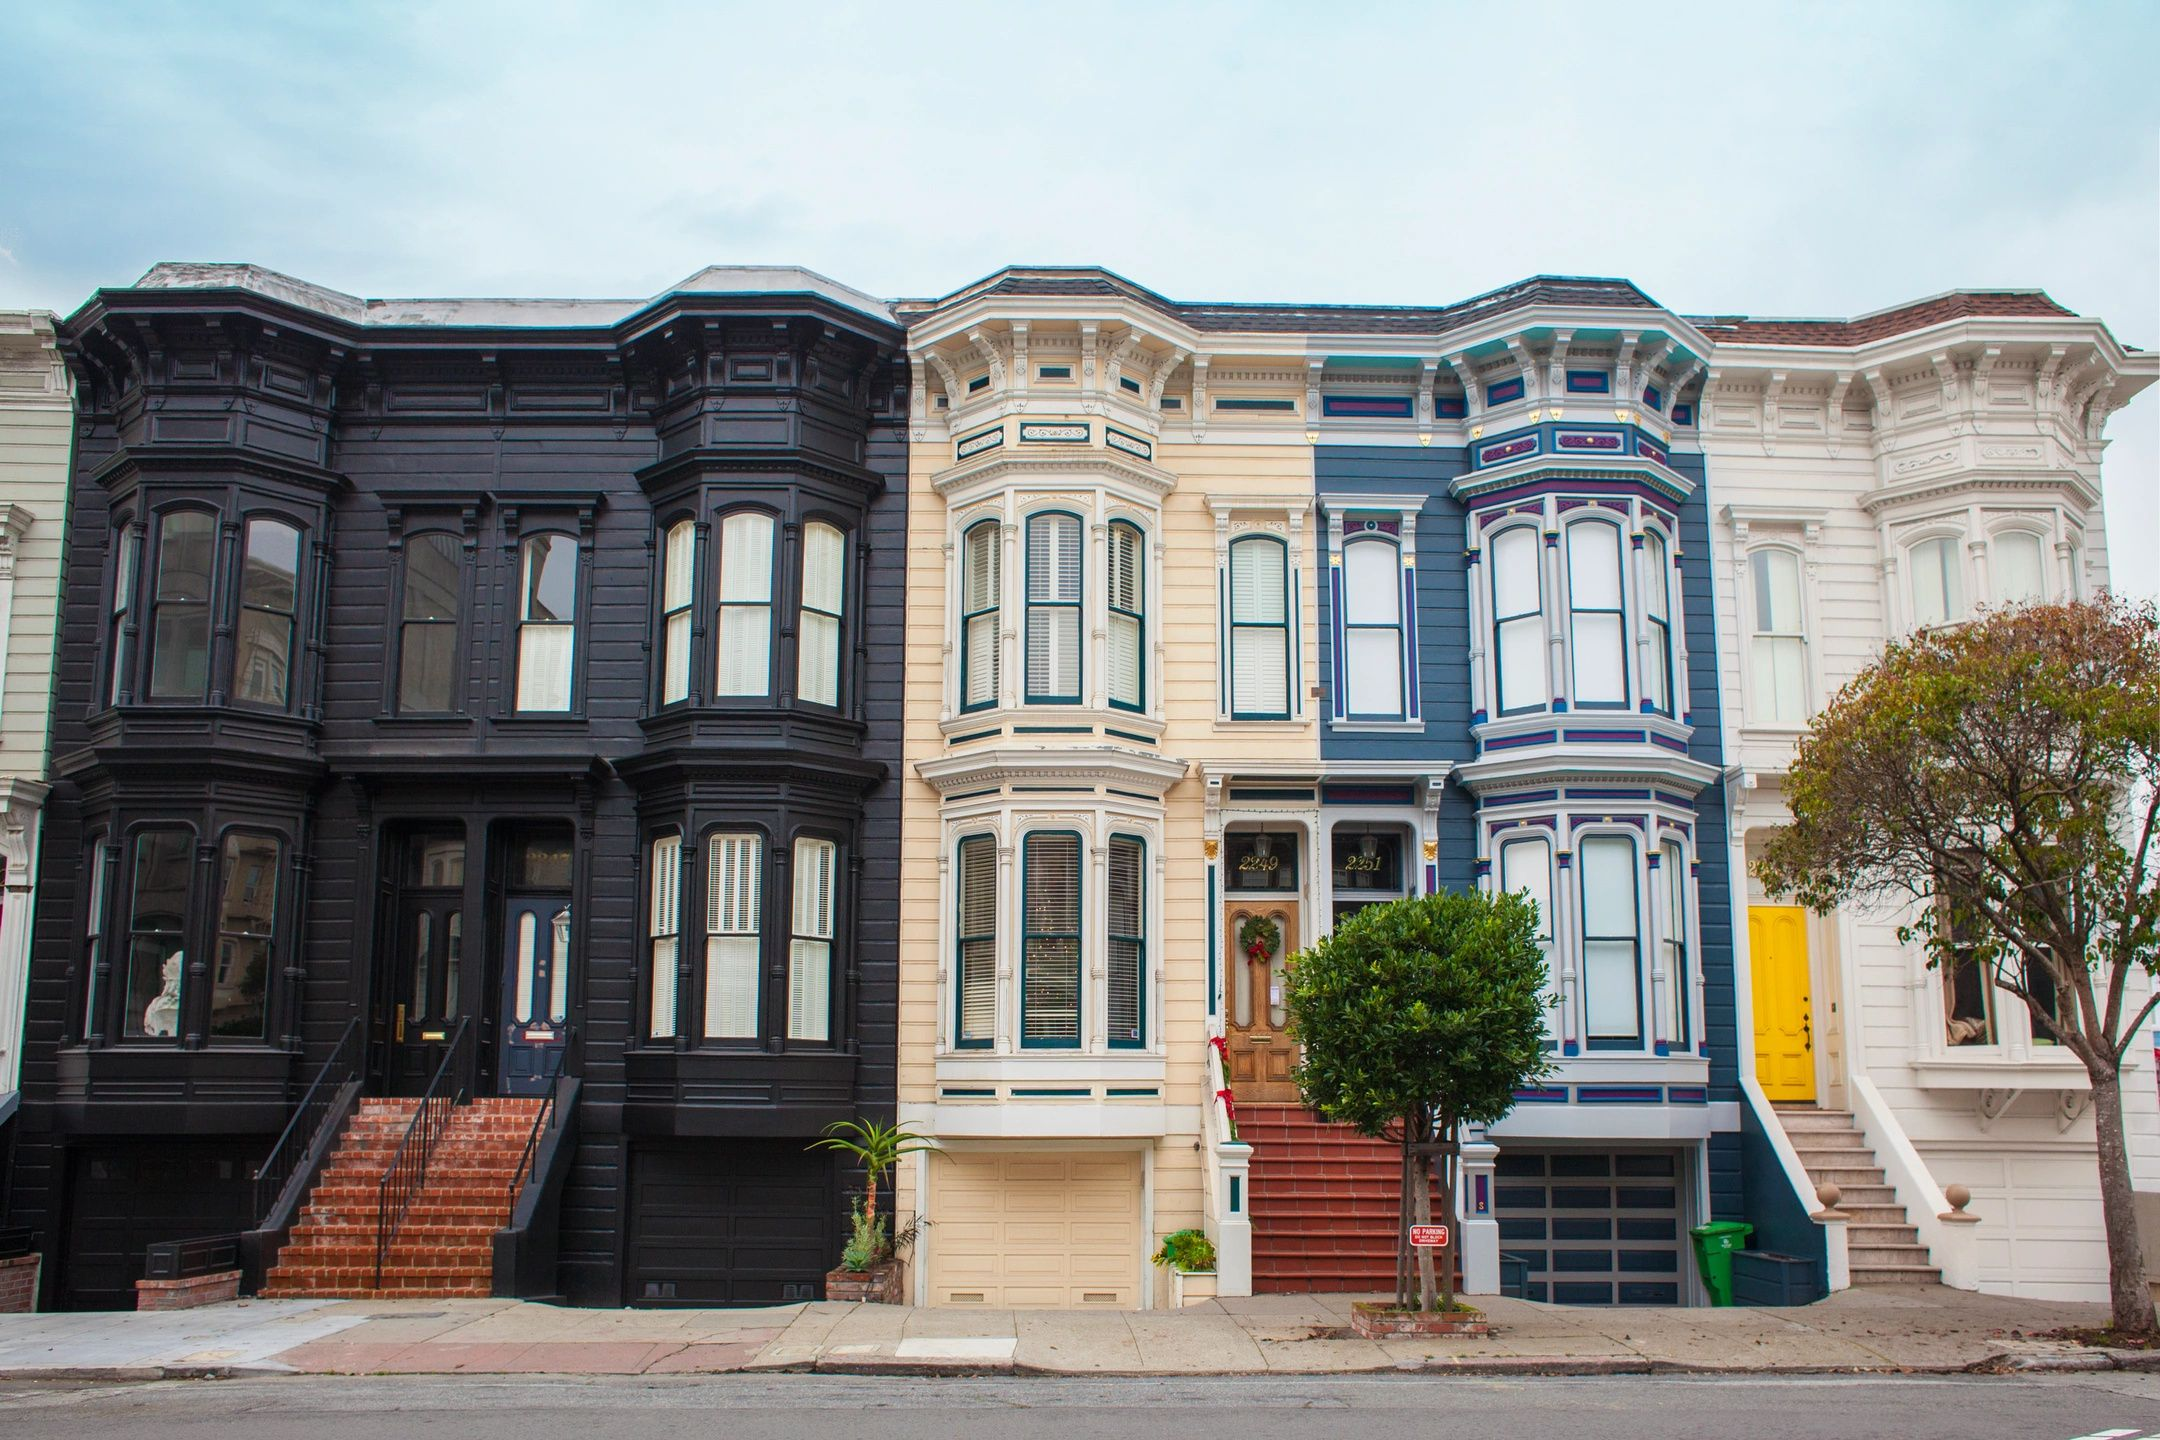 Yes, you can own real estate in an IRA, but should you?